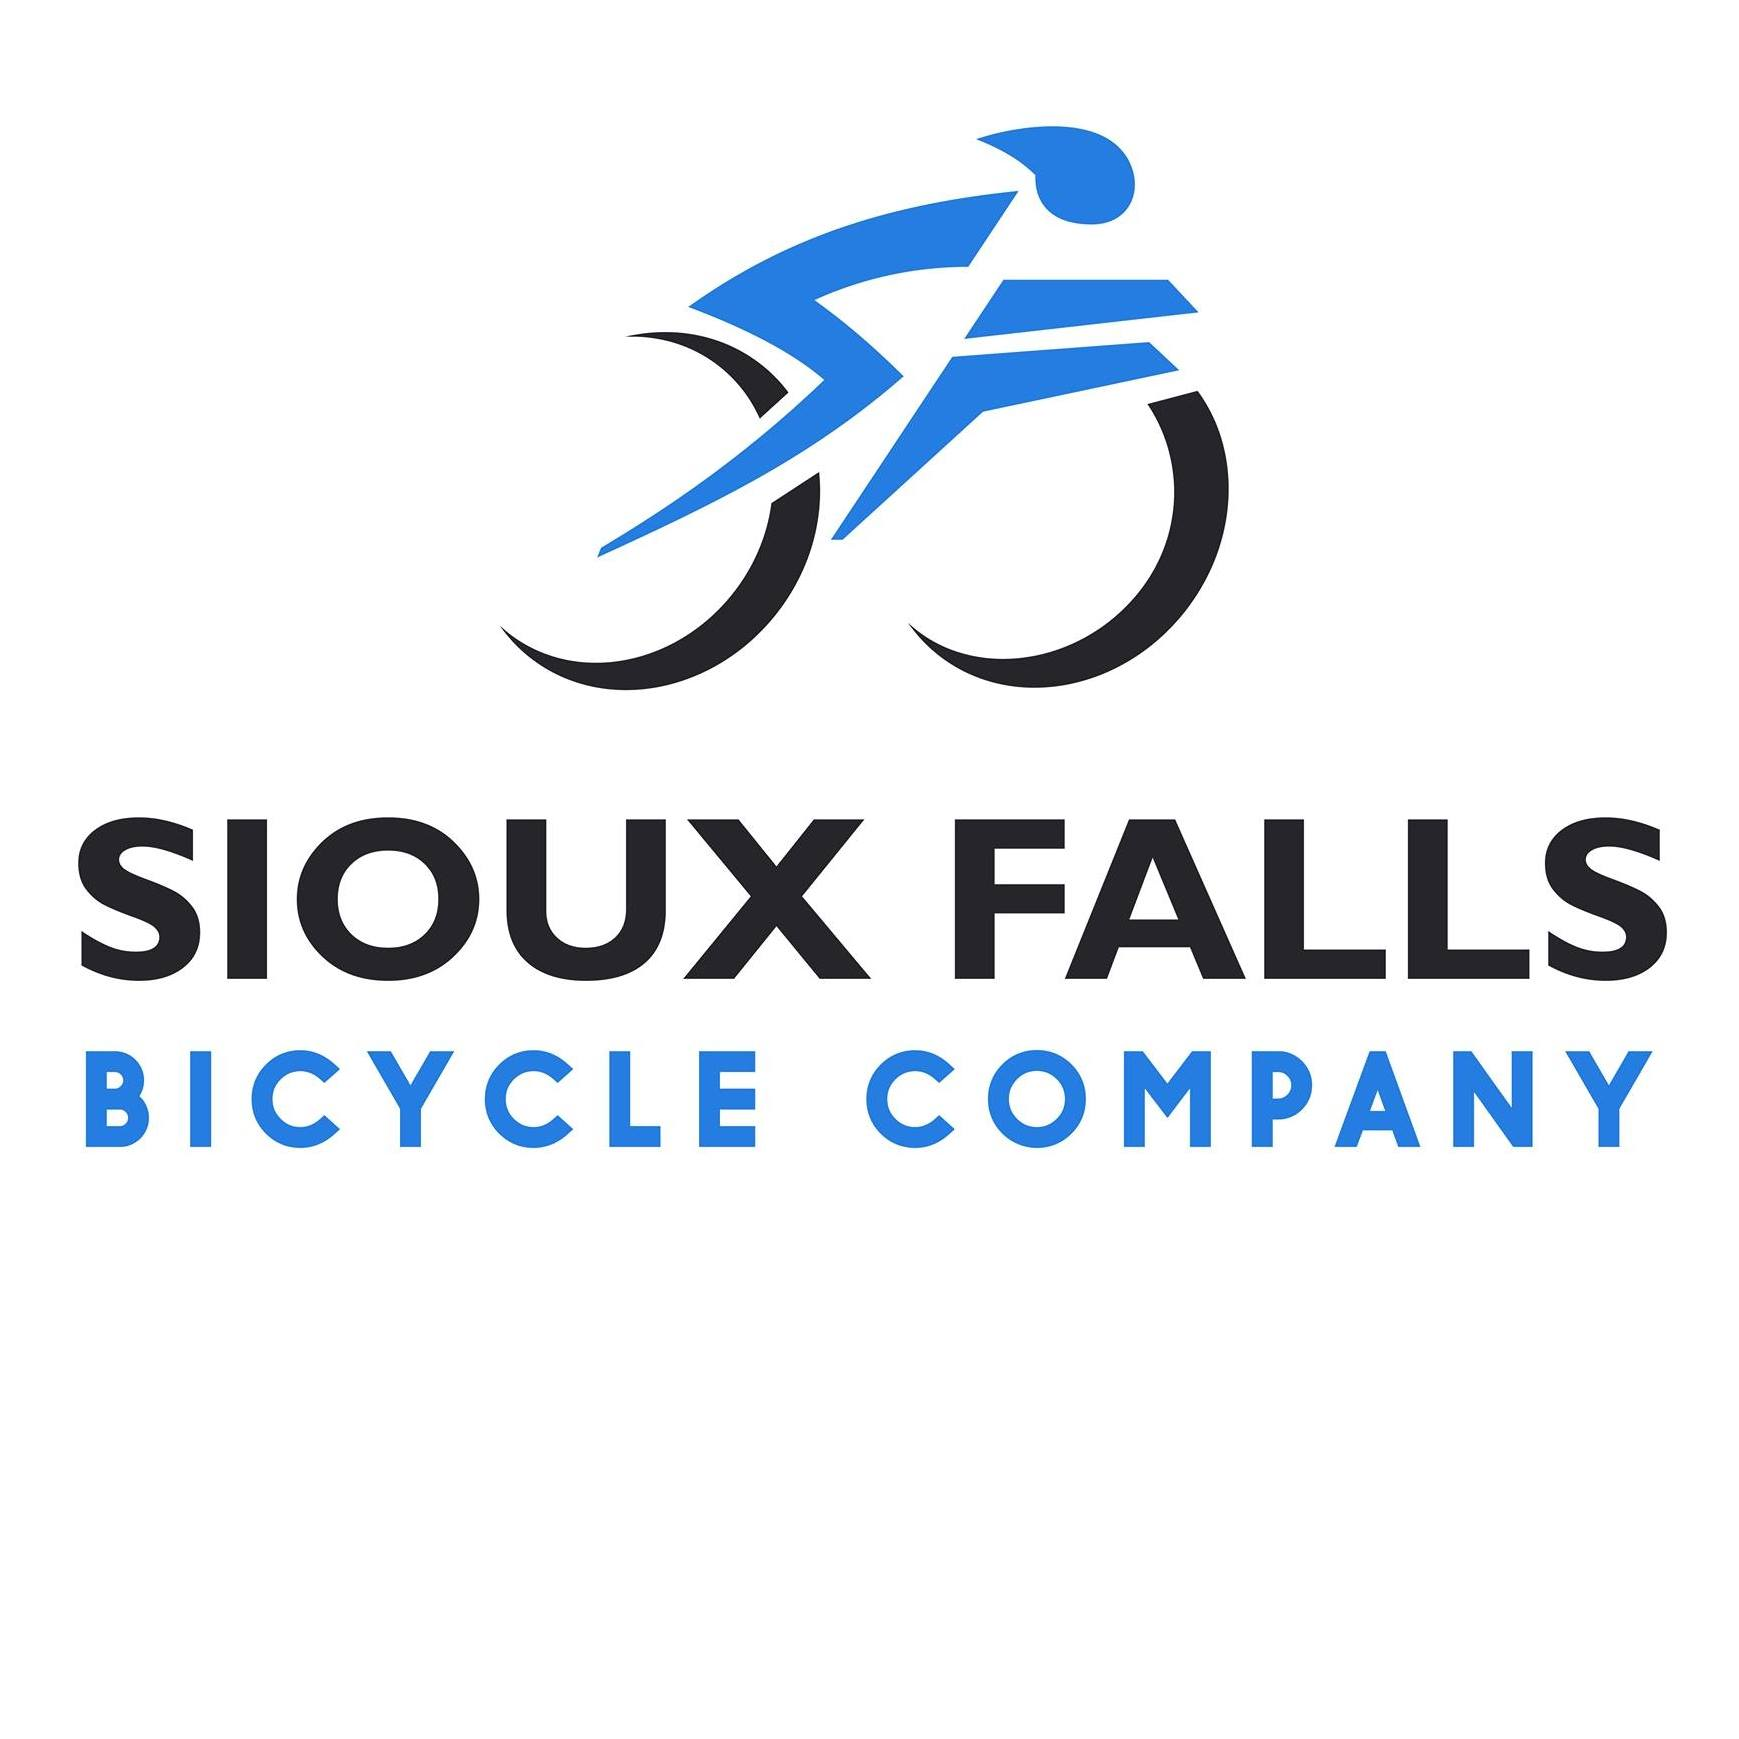 Sioux Falls Bicycle Company